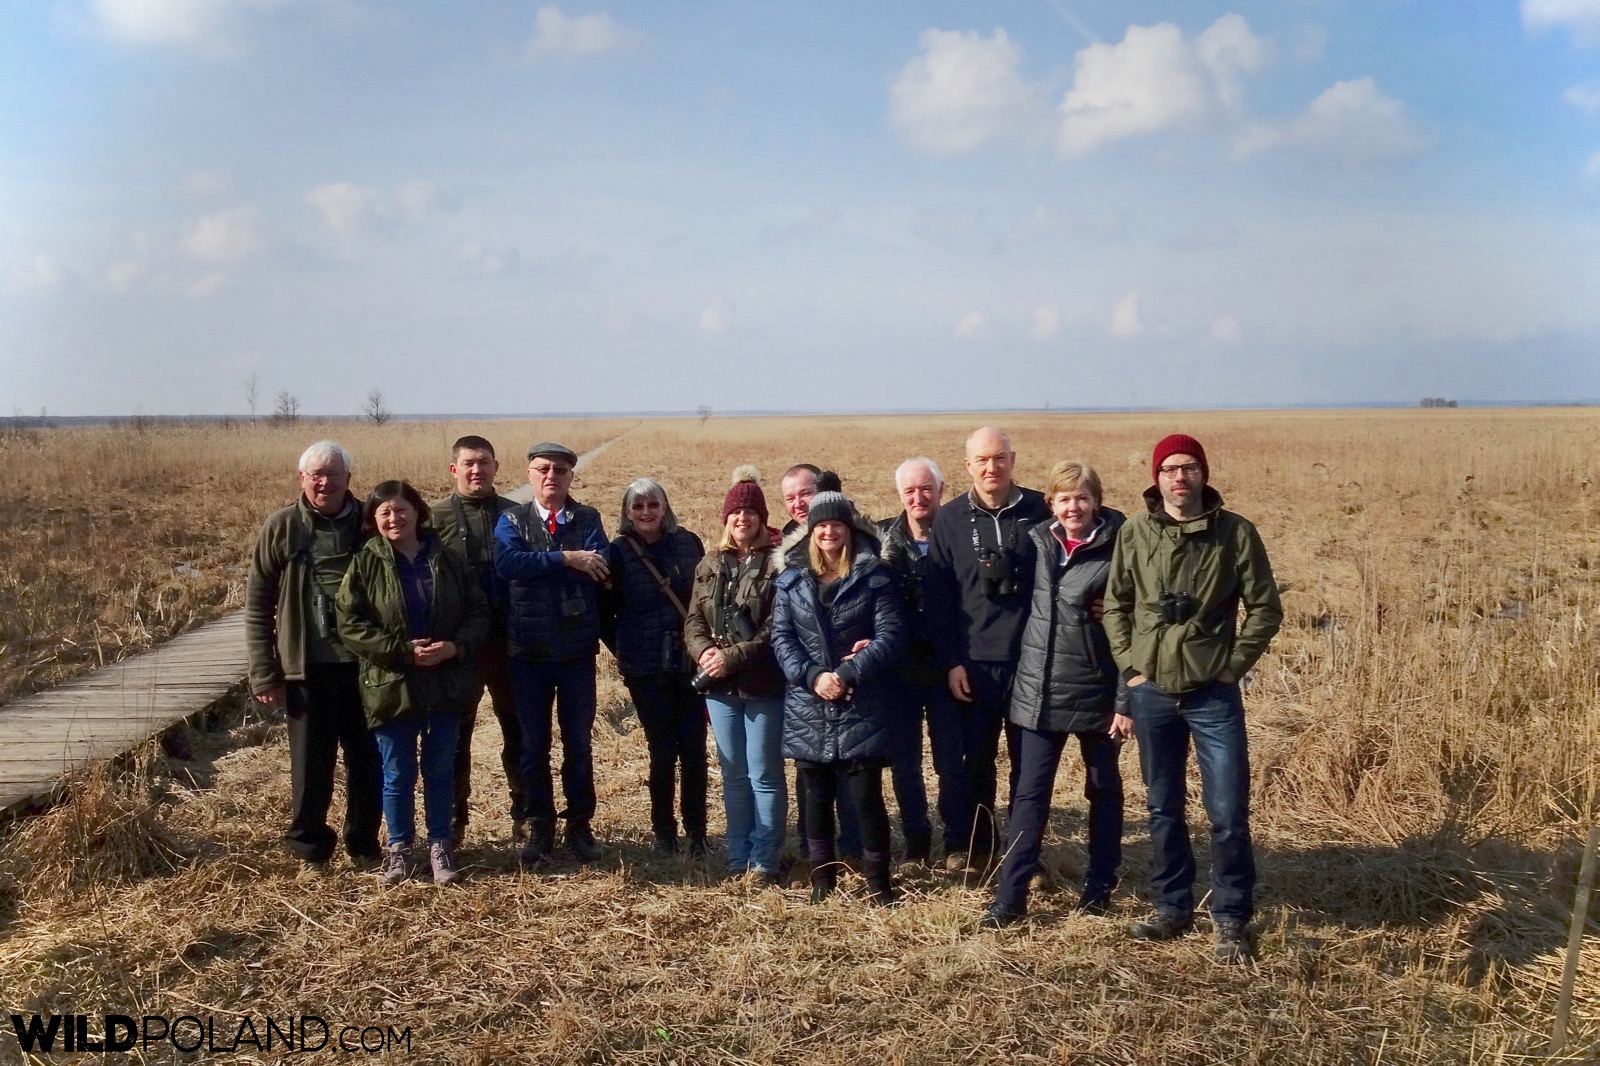 Wild Poland group at the Biebrza Marshes